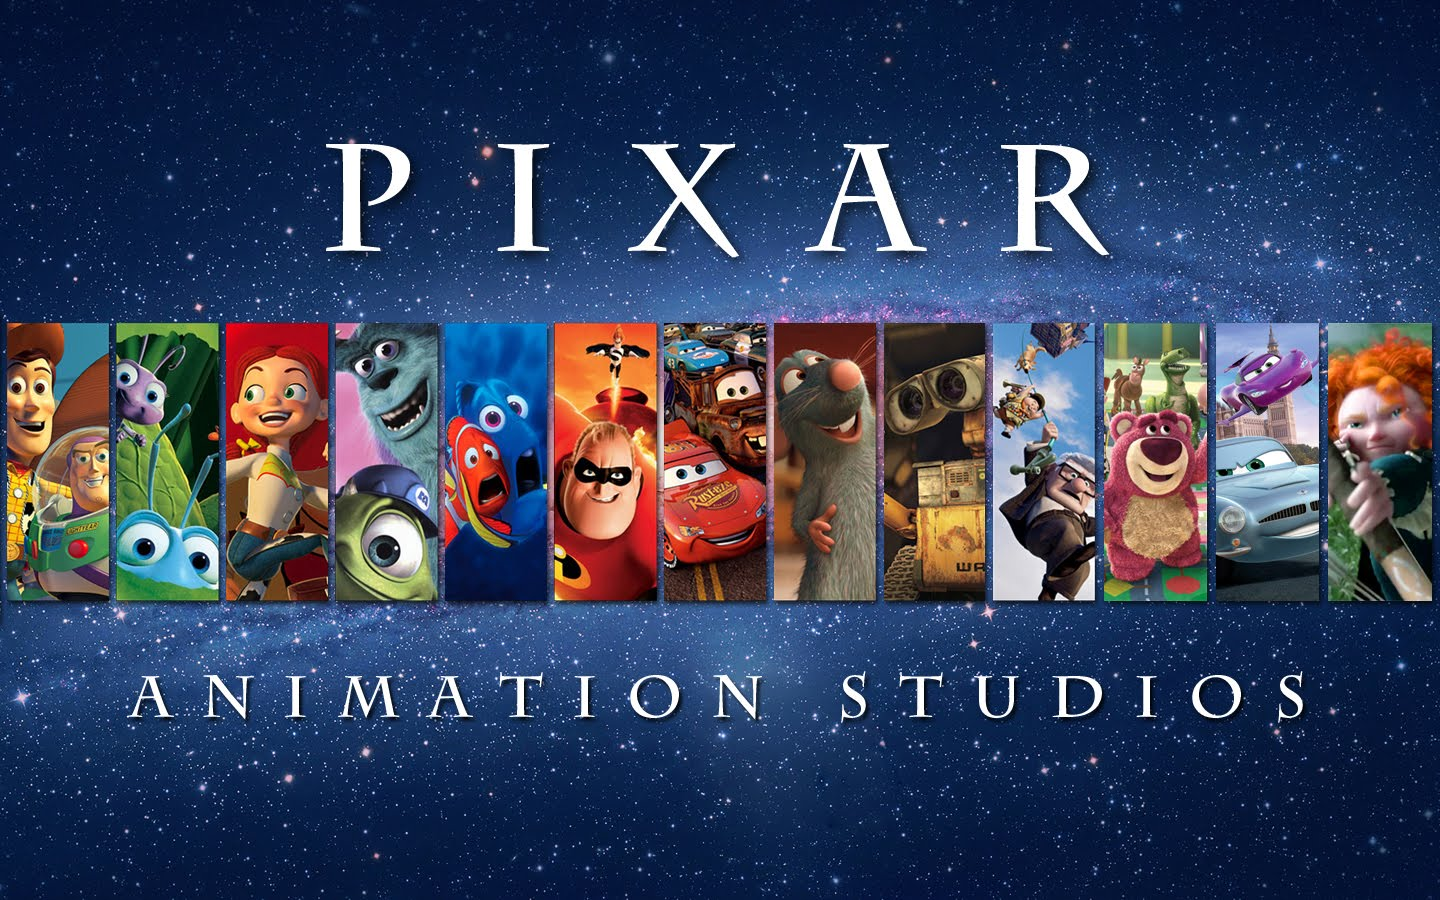 Eye catch pixar studios